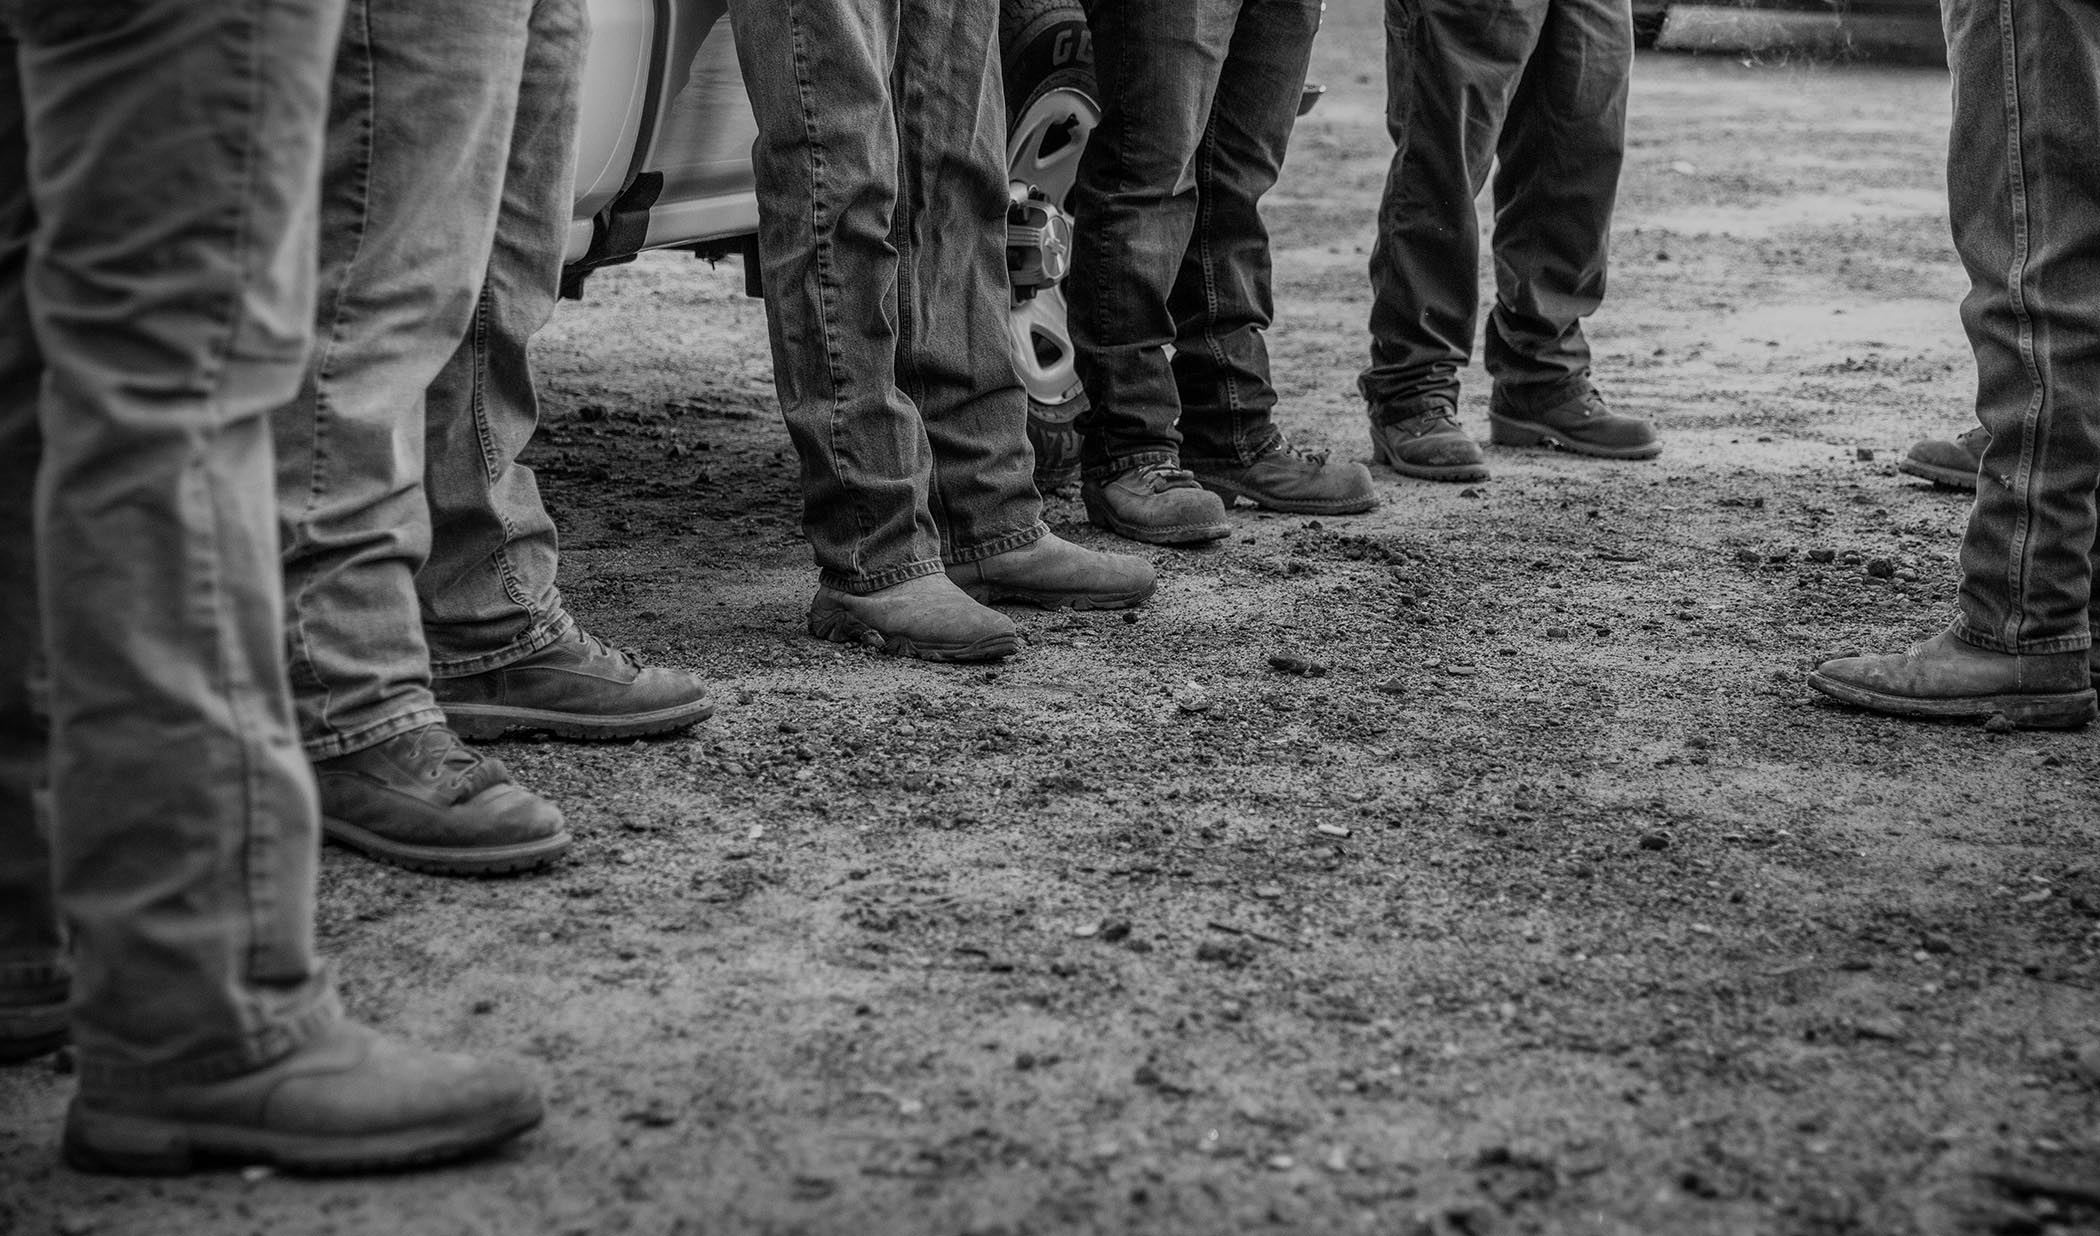 bw closeup of a group of construction workers focused on their boots